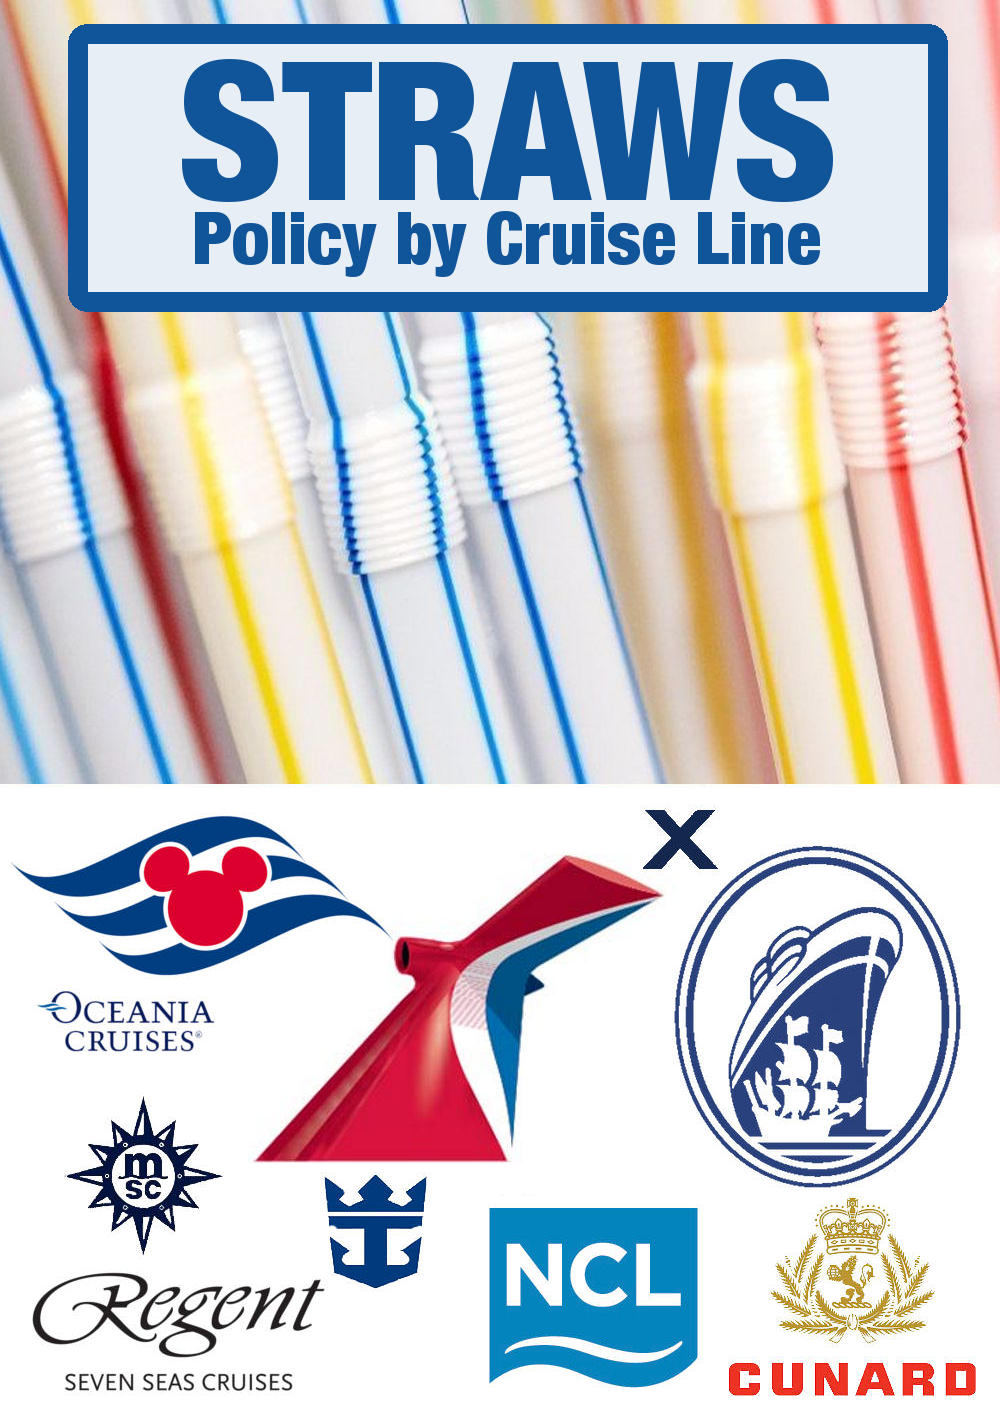 Straws on Cruise Lines